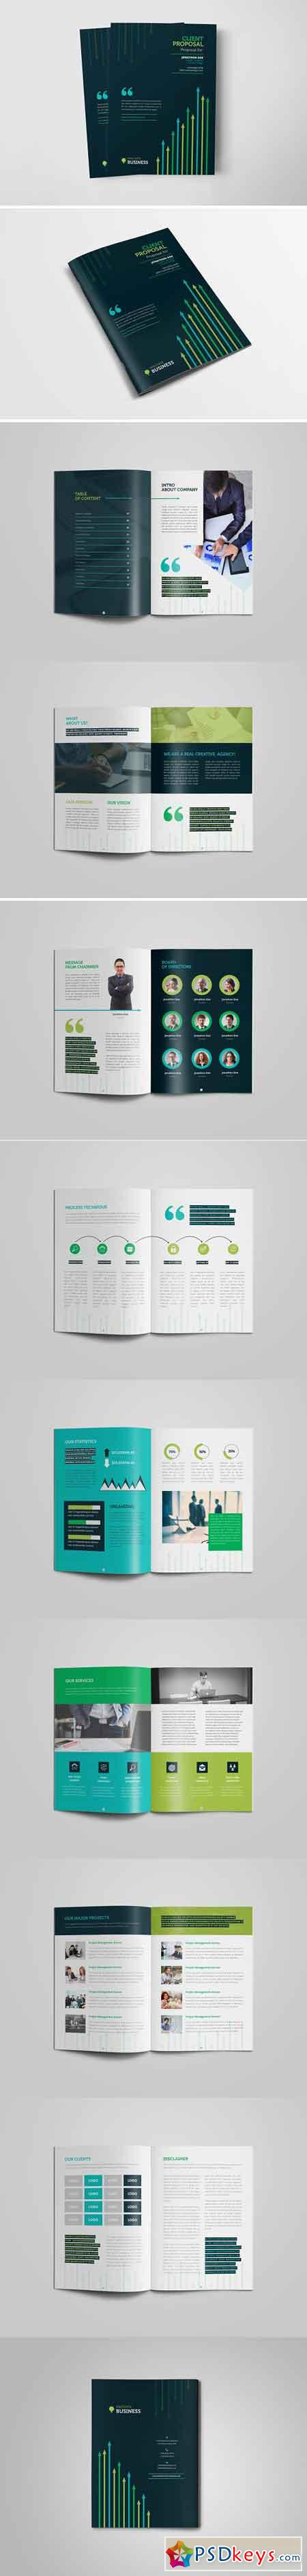 Business Project Proposal Design 3195689